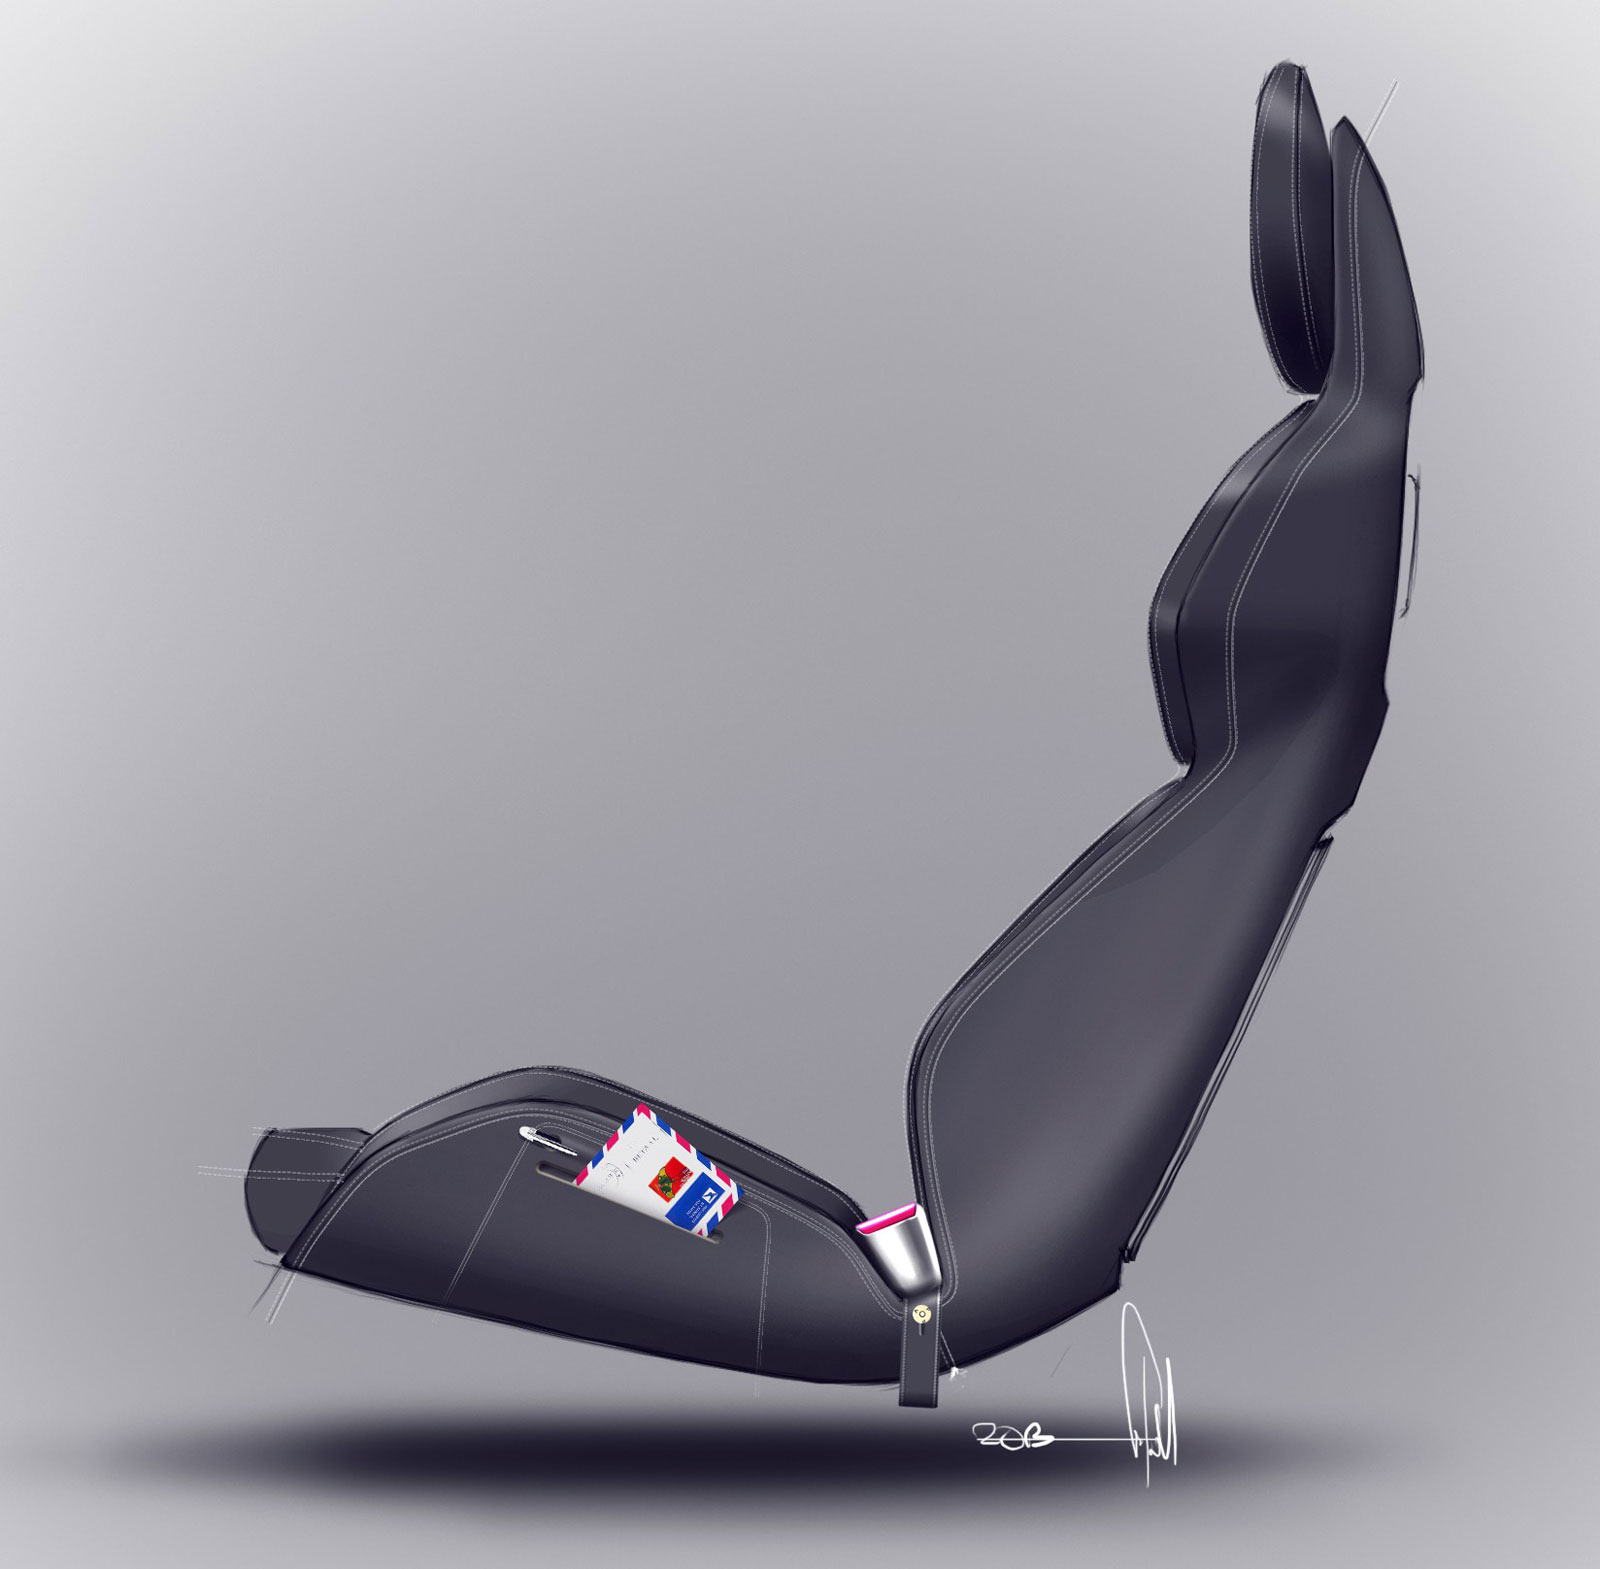 Volvo Concept Coupe Interior Seat Design Sketch Car Body